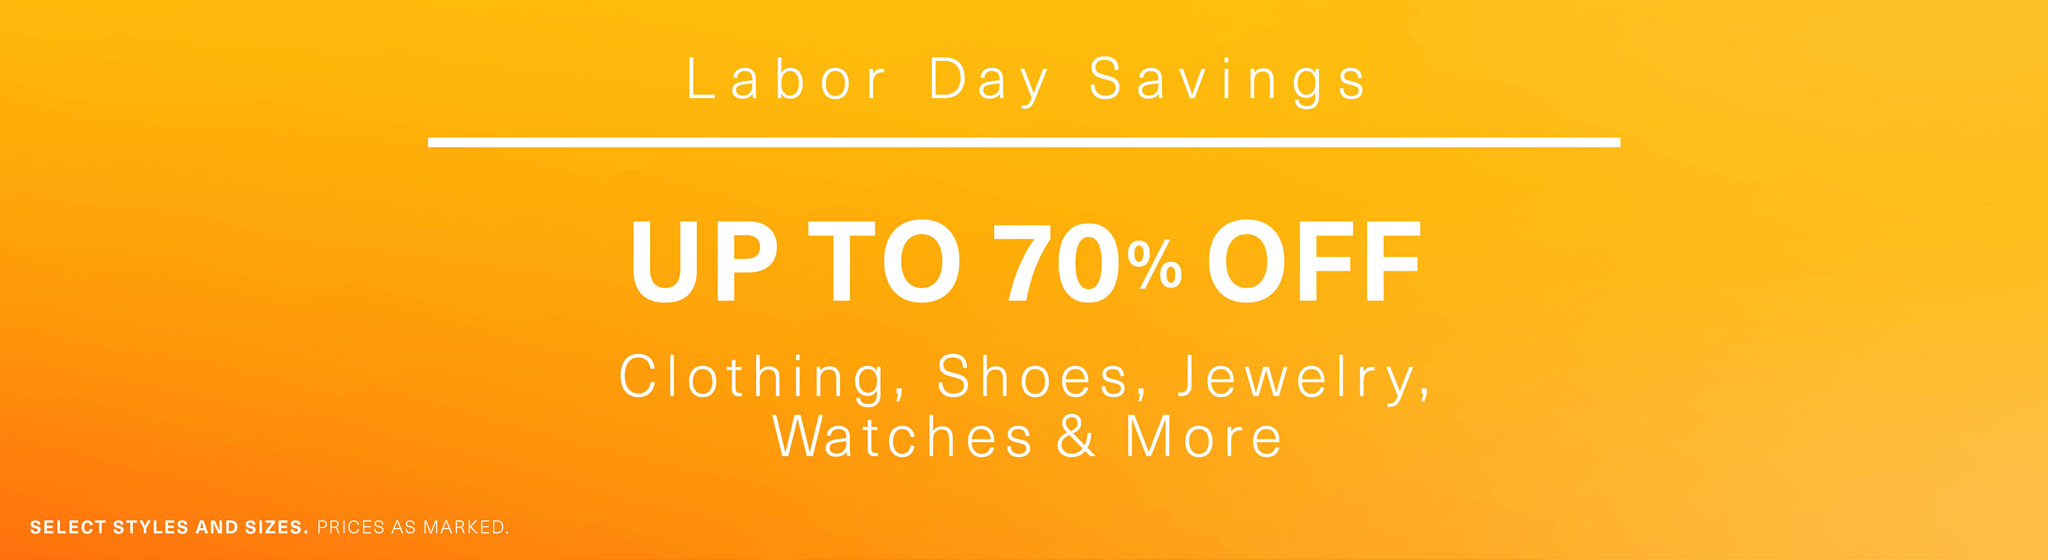 Labor Day Savings: Up to 70% Off